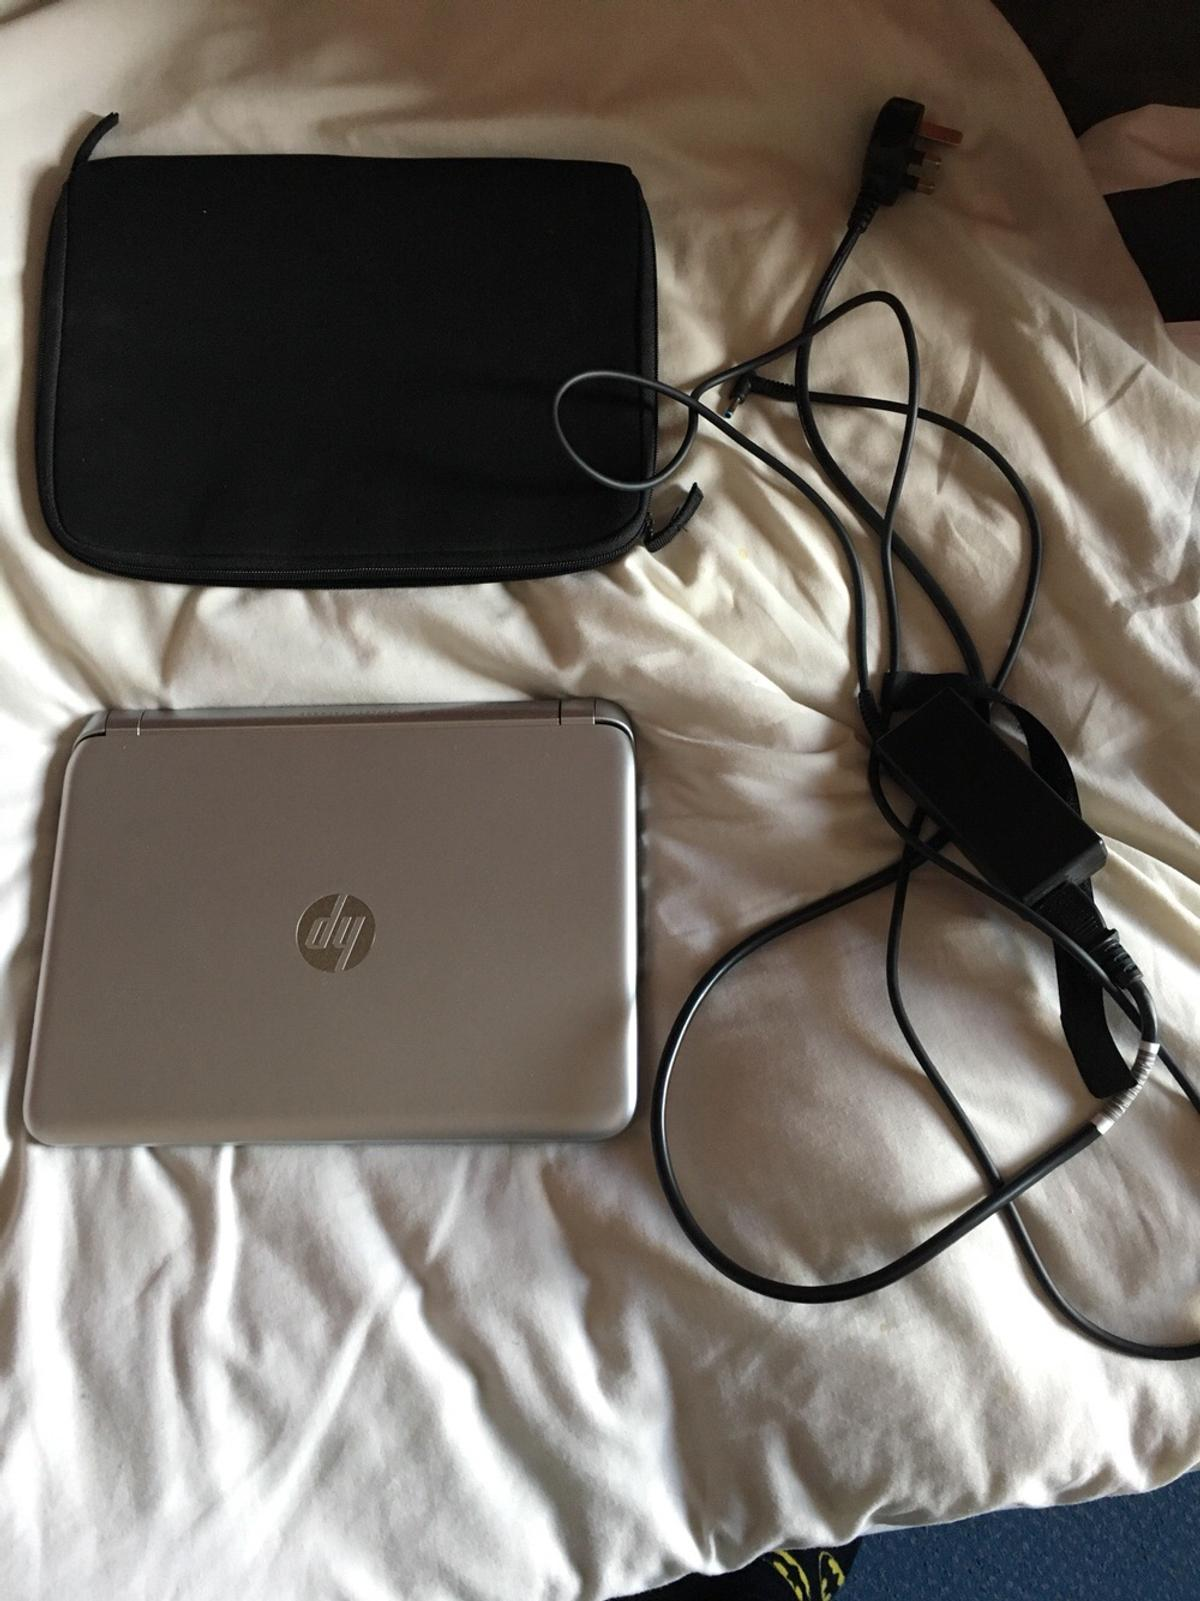 Dell HP Pavilion TouchSmart 11 Notebook PC in BD6 Bradford for